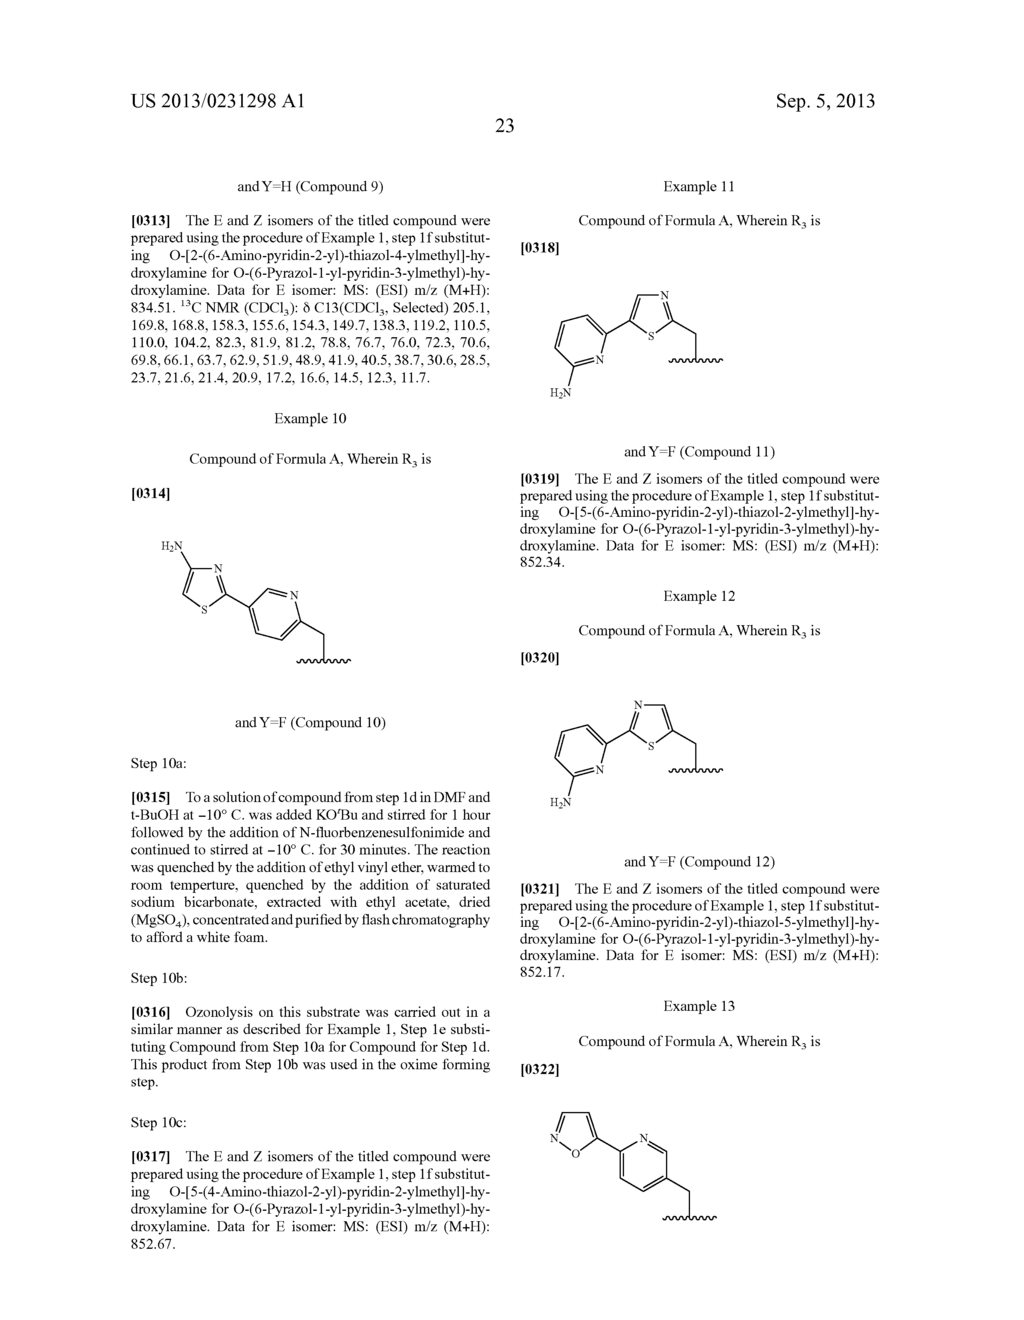 ANTI-BACTERIAL ACTIVITY OF 9-HYDROXY DERIVATIVES OF 6,11-BICYCLOLIDES - diagram, schematic, and image 24